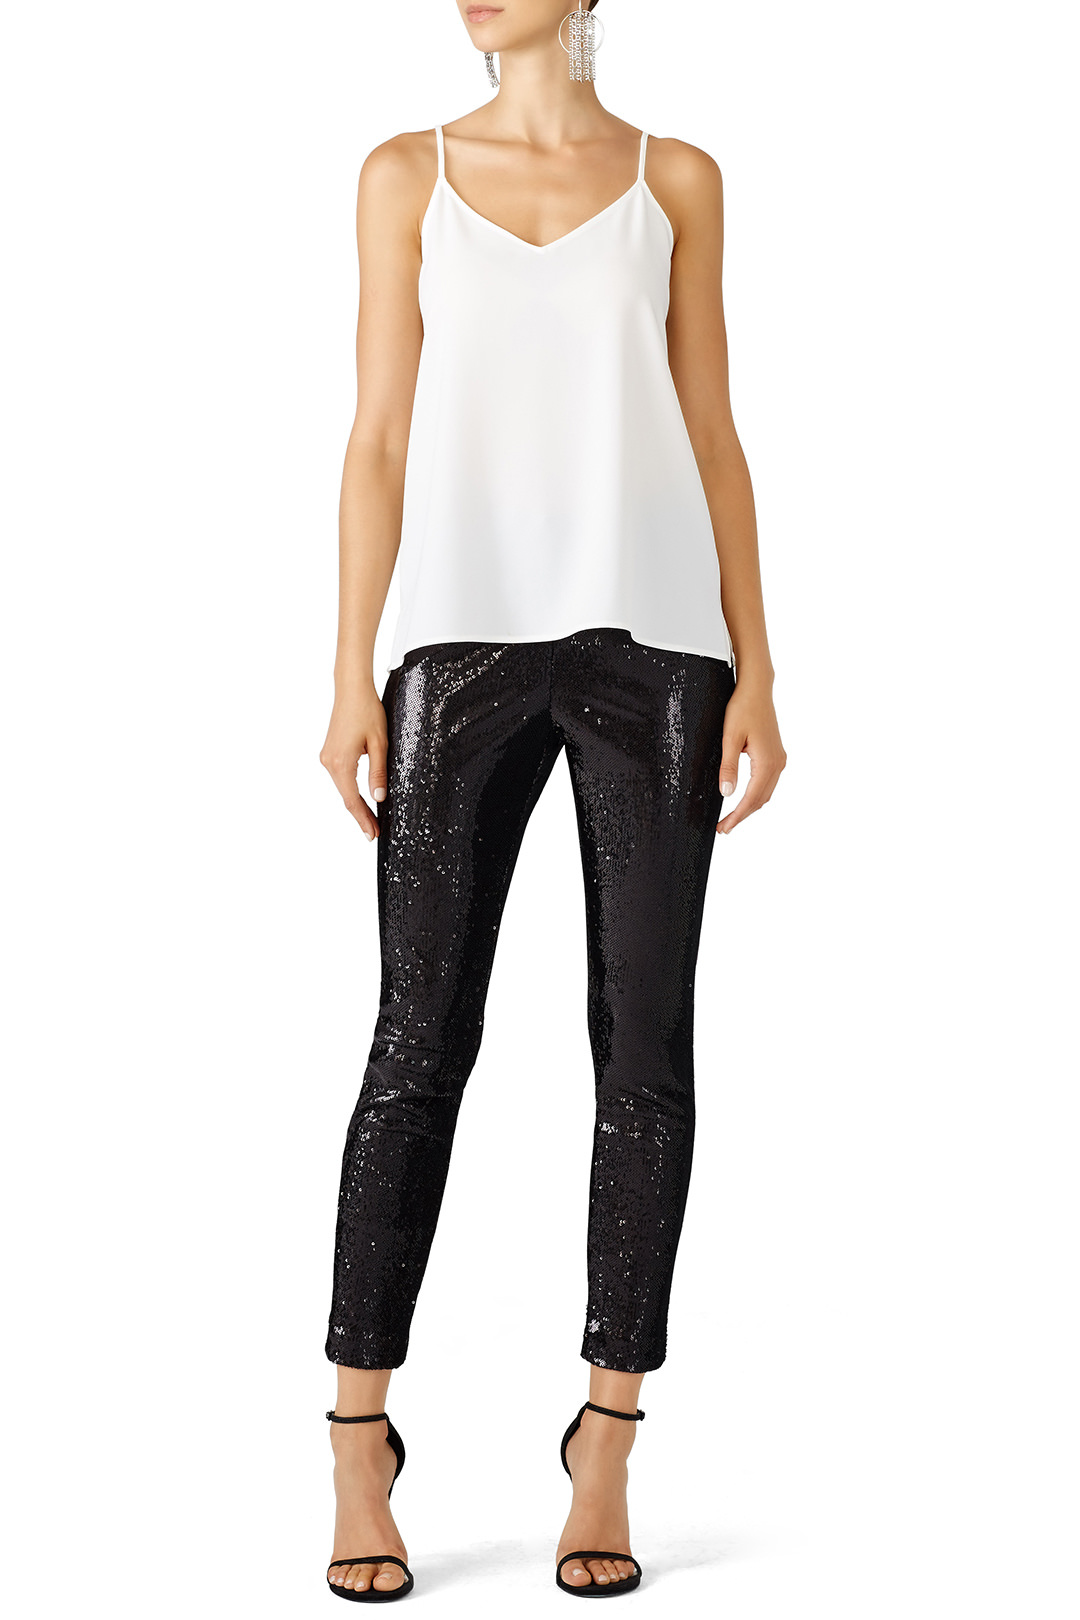 Cupcakes and Cashmere Black Sparkle Leggings - These look fun! And LOOK! SPARKLES!!!